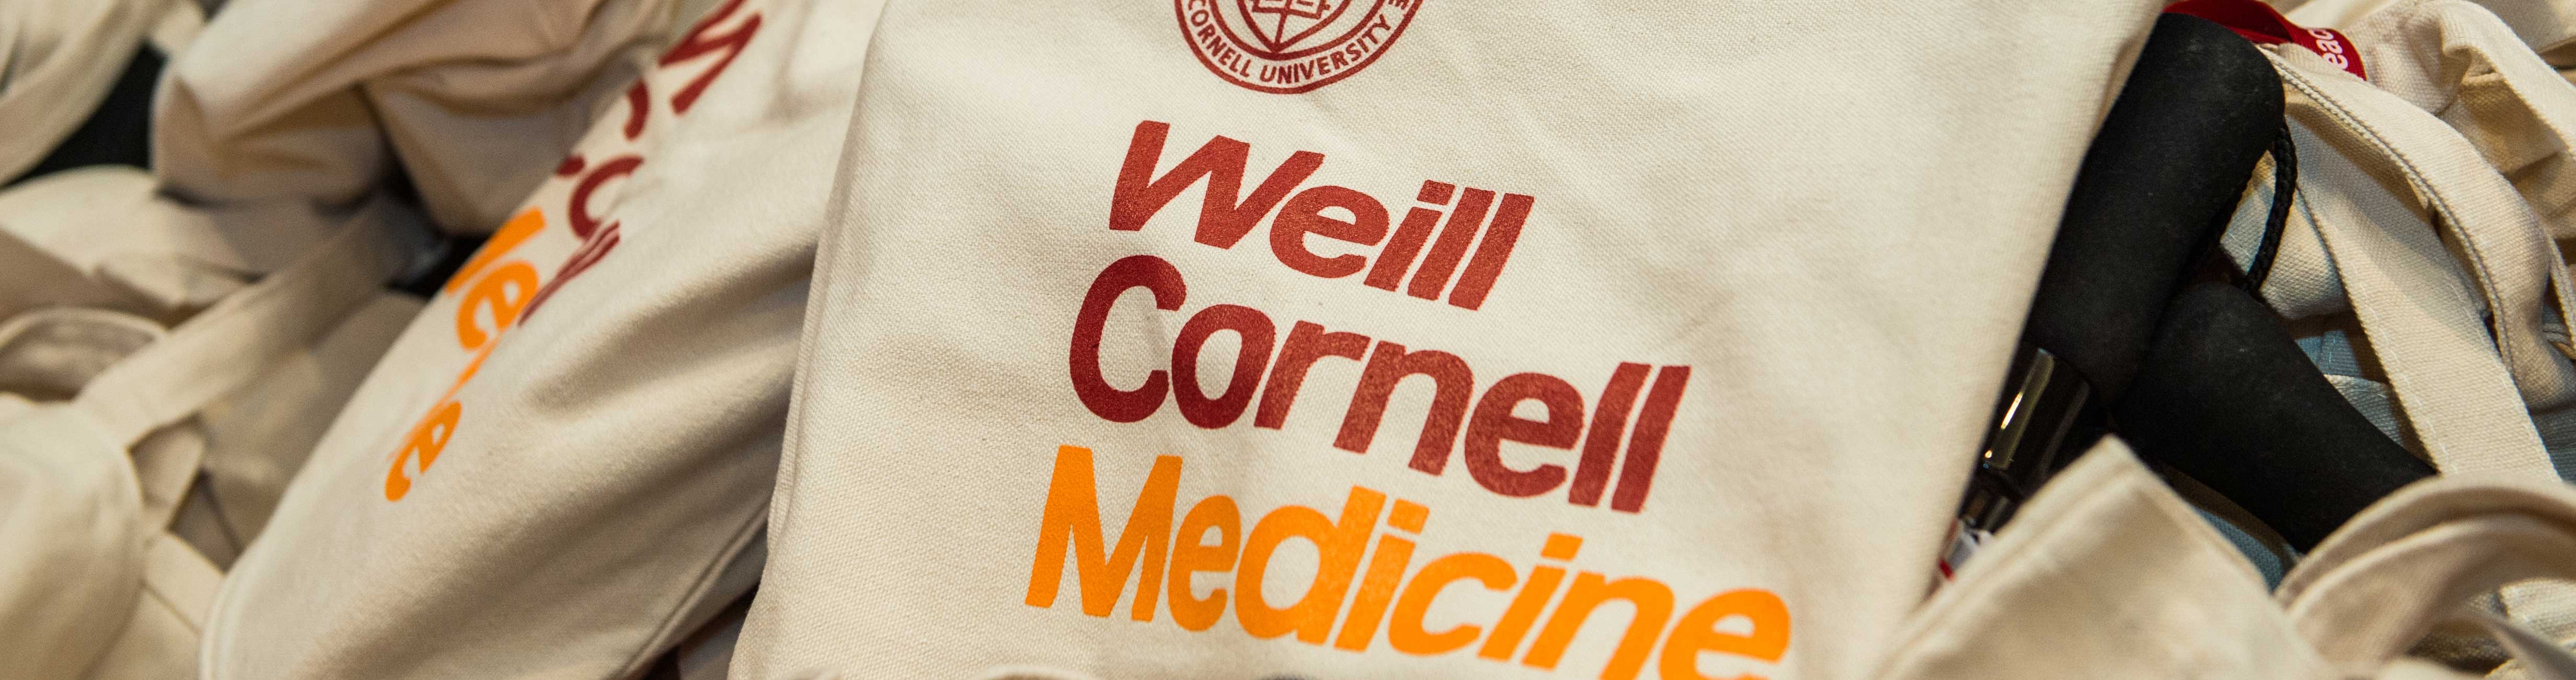 Promotional tote bags from Weill Cornell Medicine.